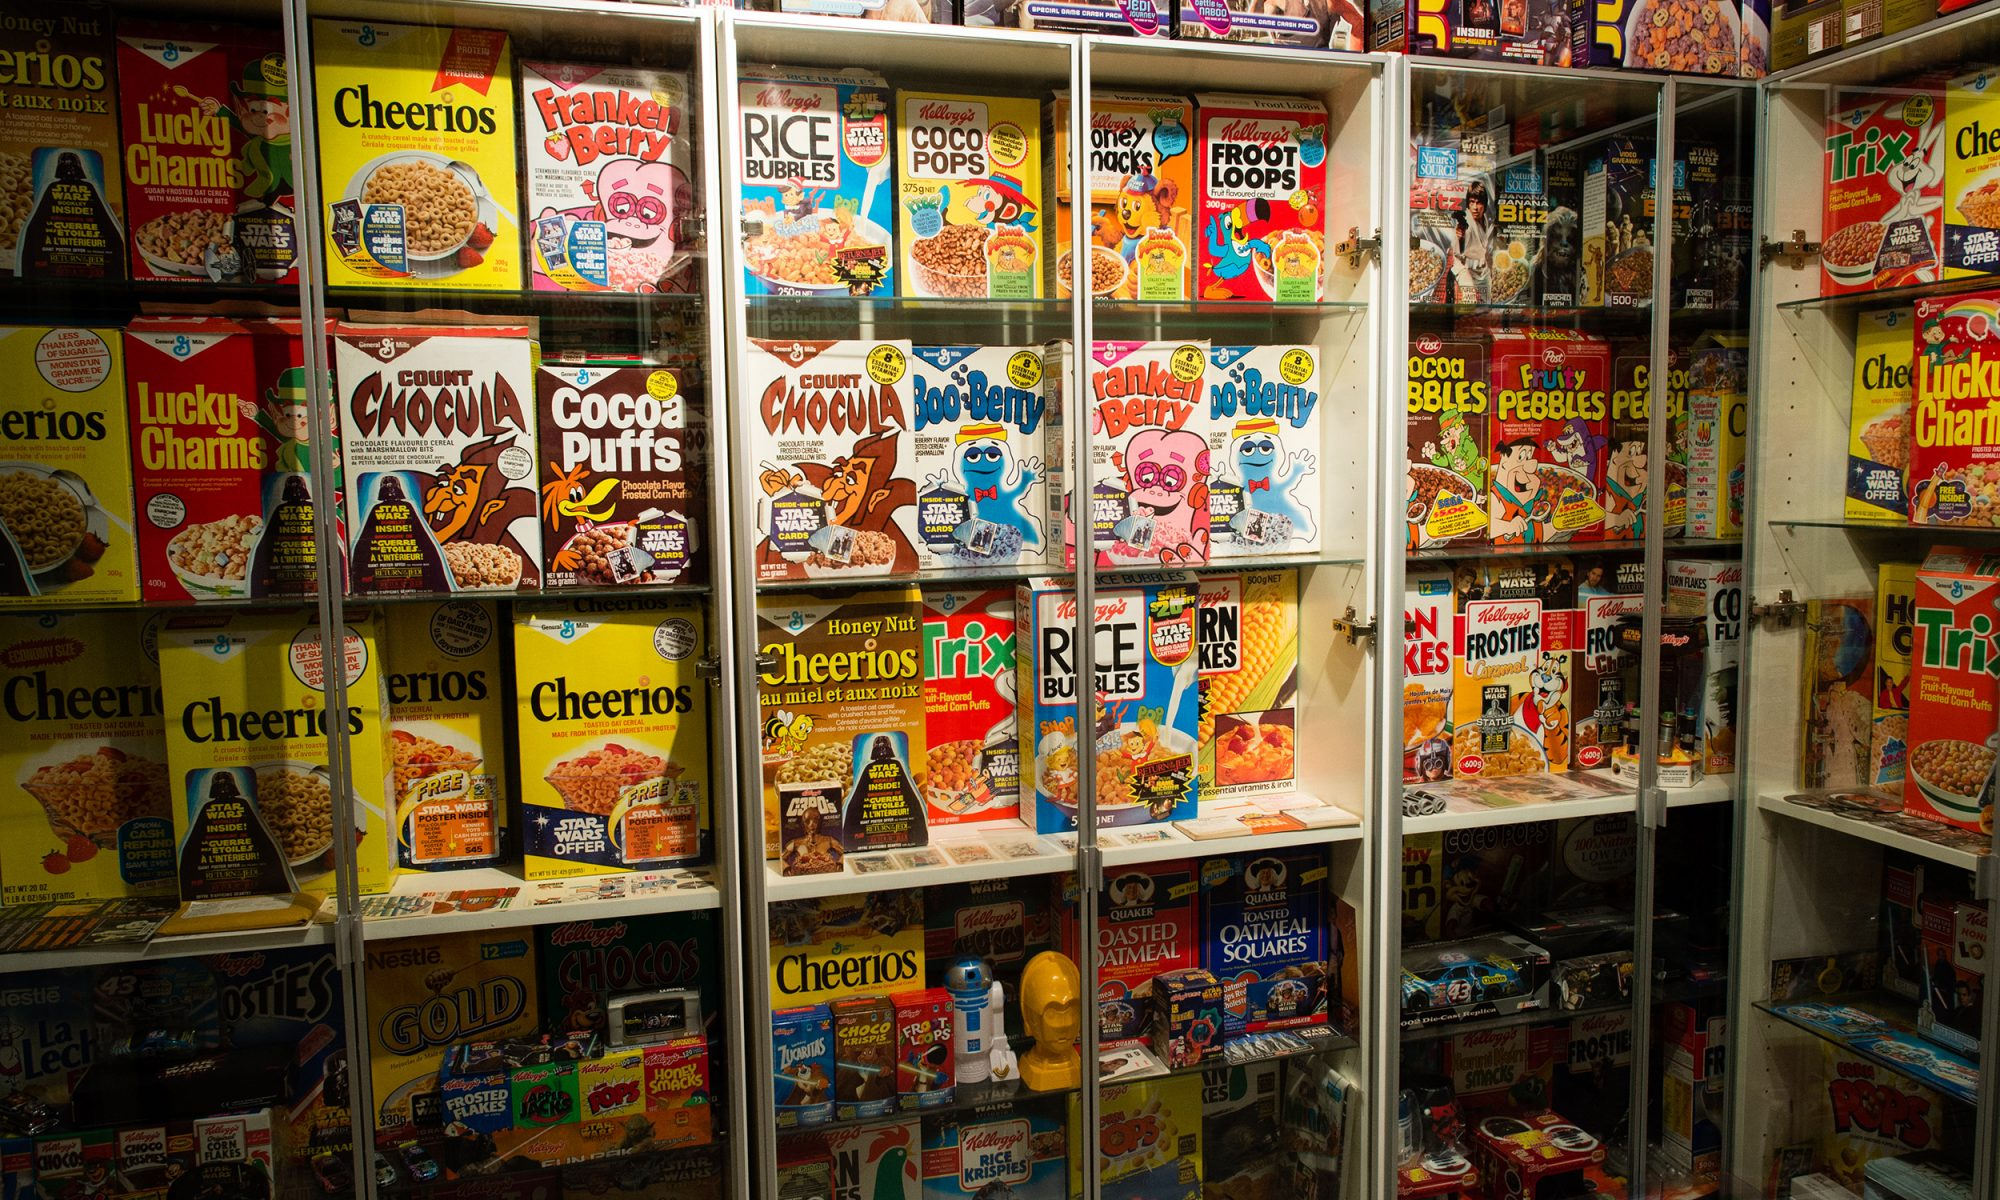 EC: The World's Largest Star Wars Cereal Collection Comes from Every Corner of the Galaxy